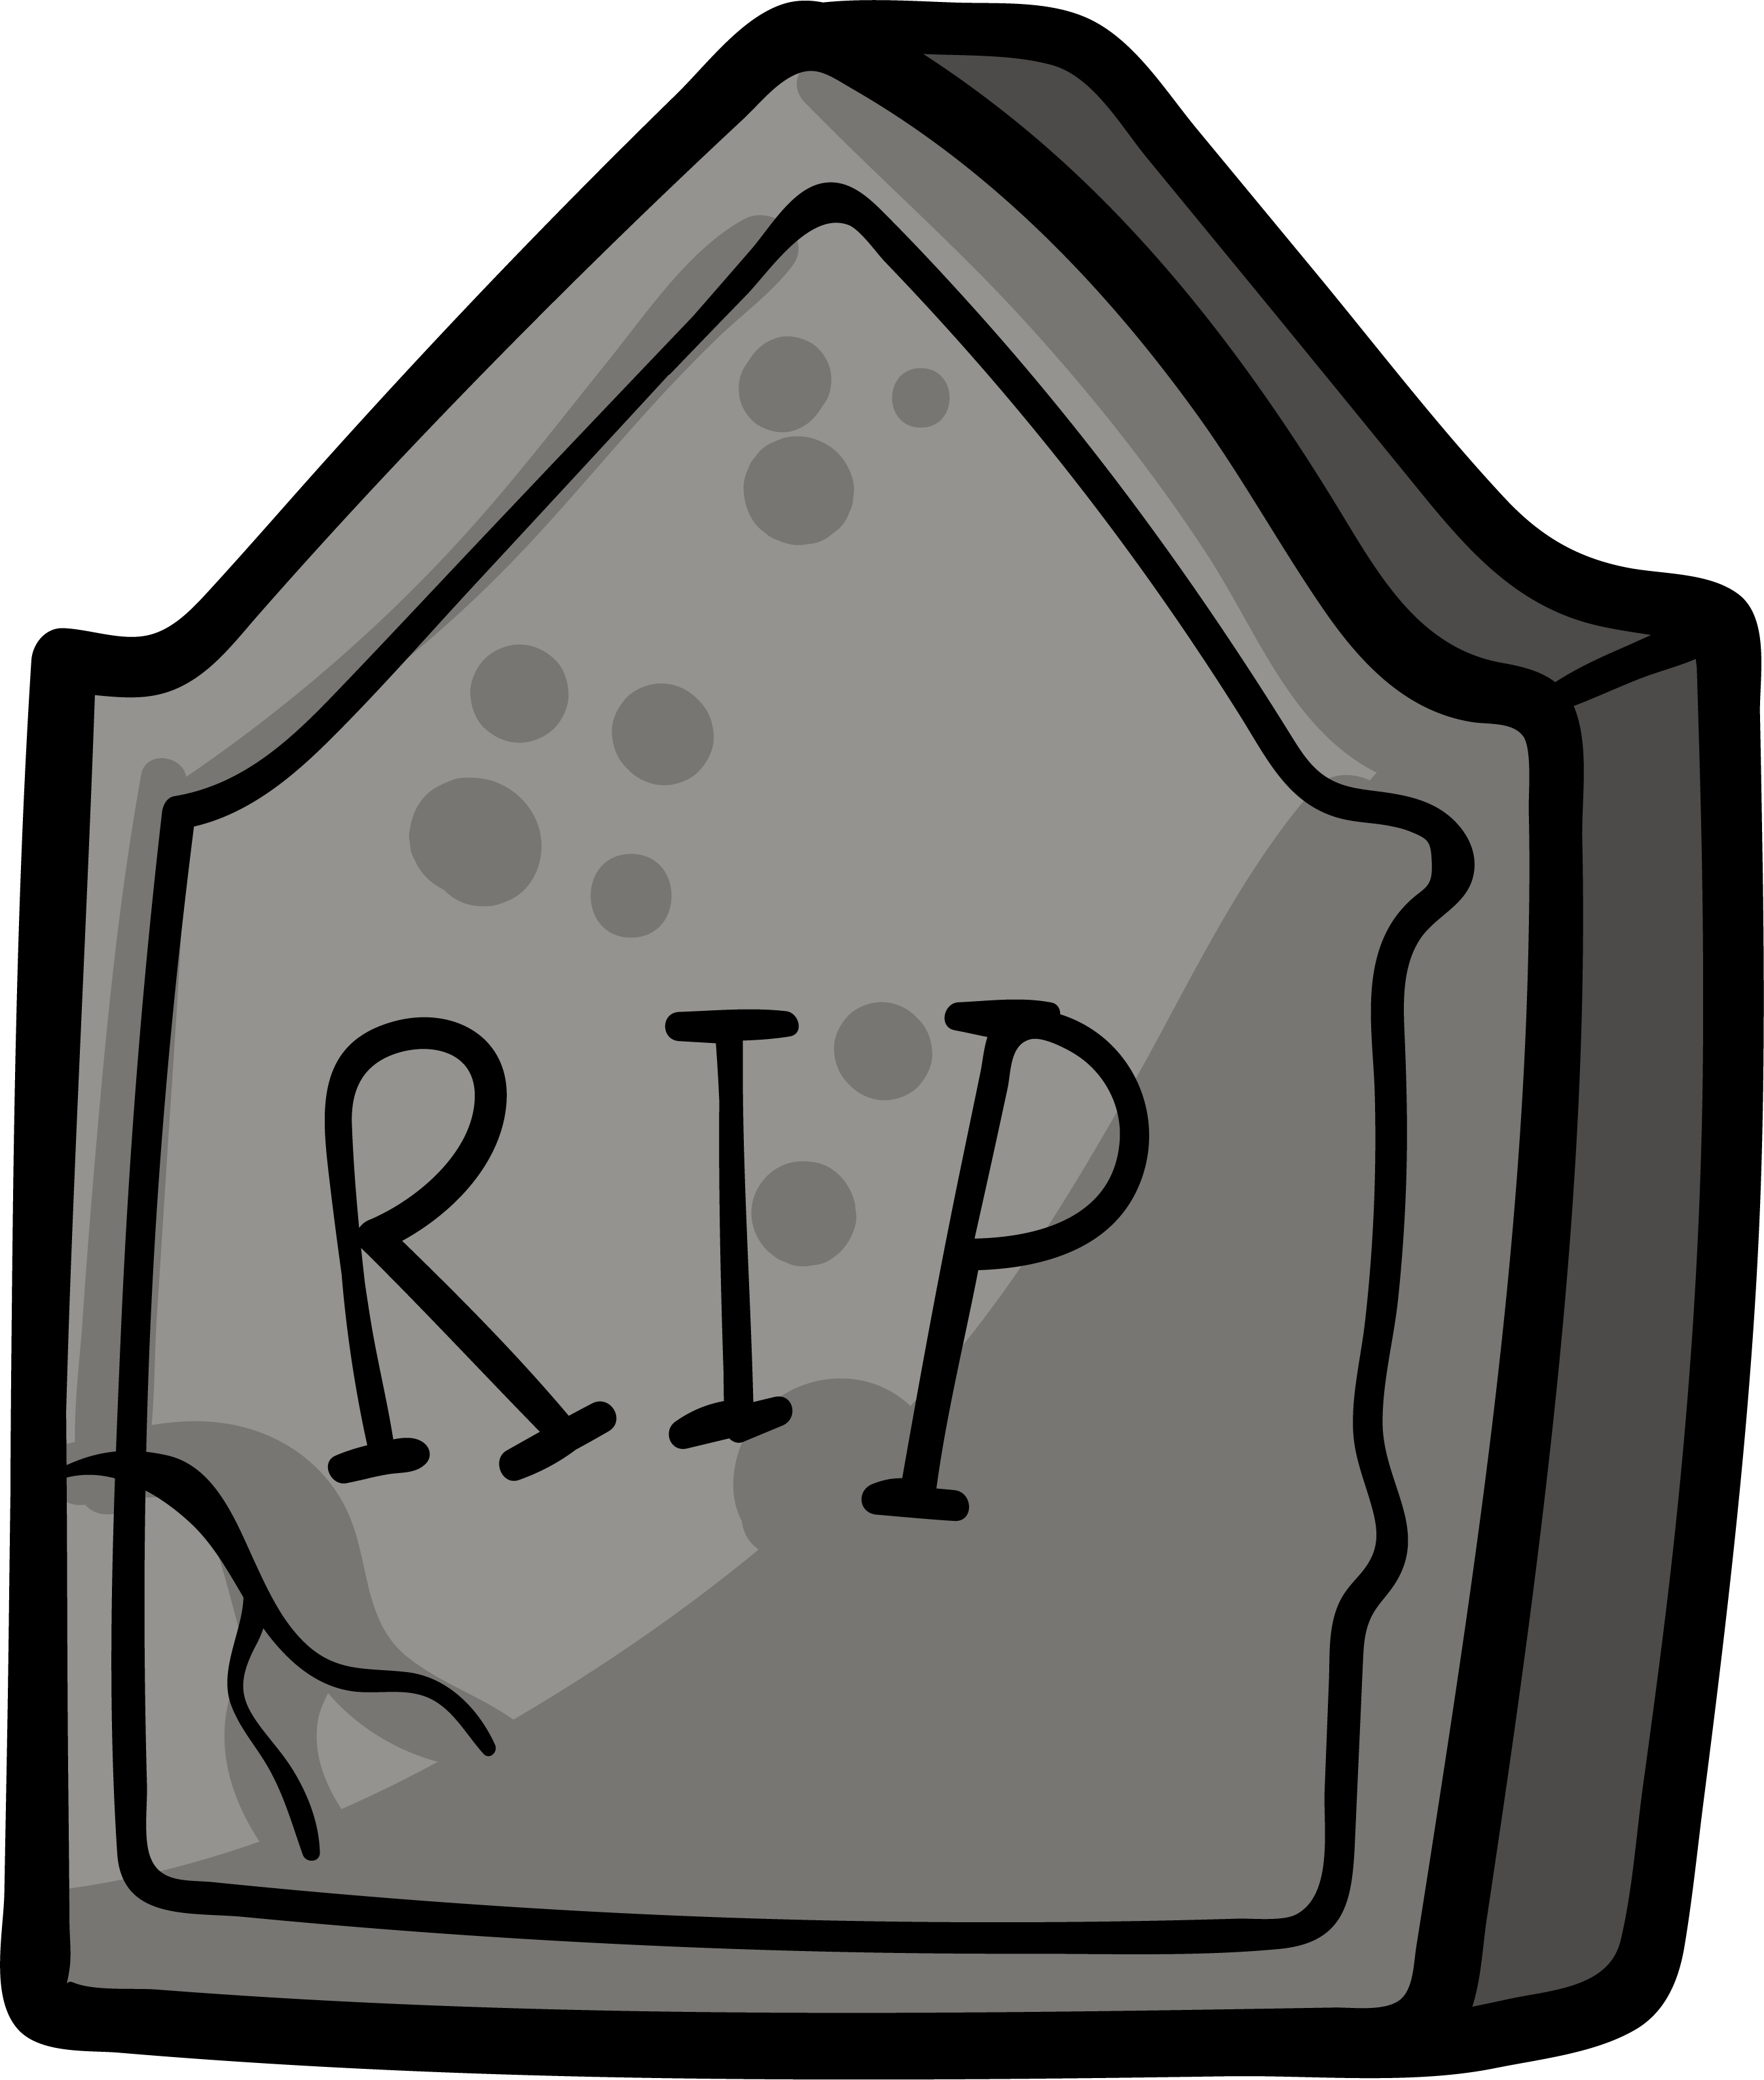 banner royalty free download Grave clipart tomb. Headstone drawing cartoon hand